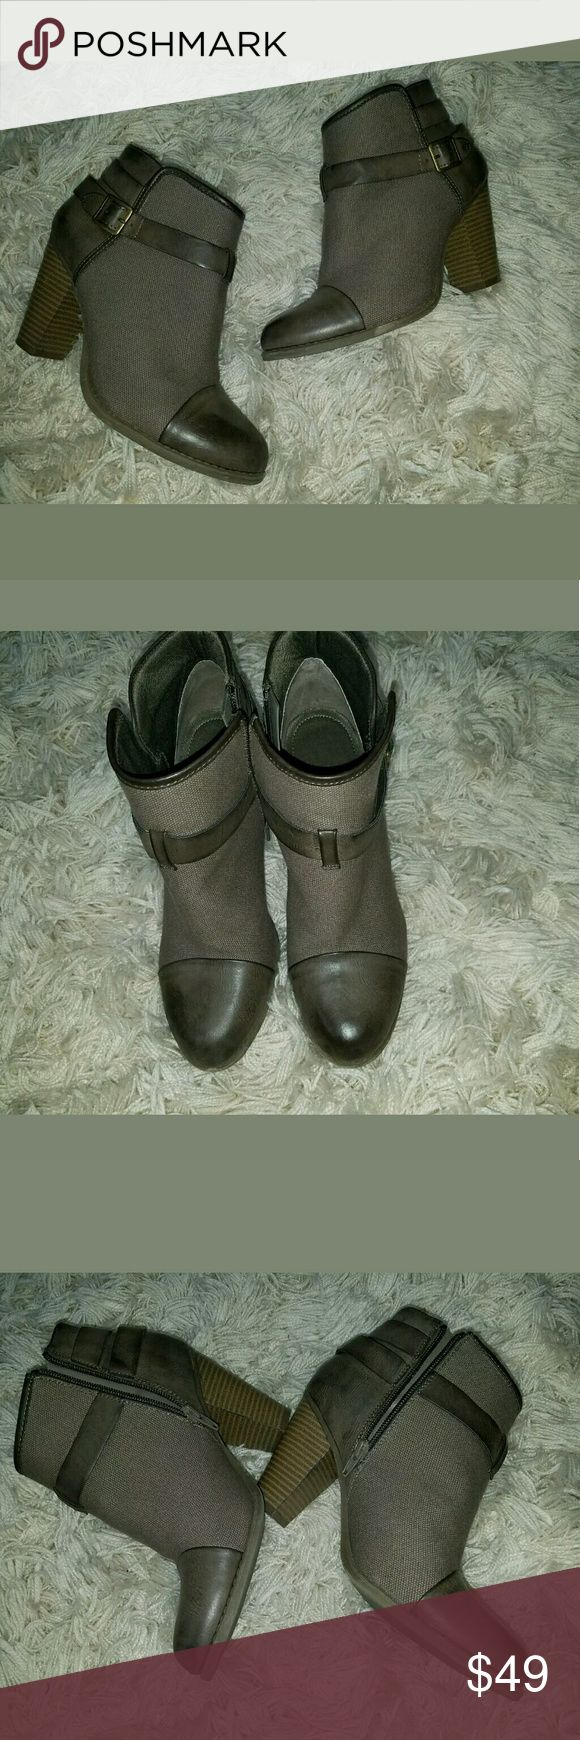 Lauren Conrad Ankle Bootie Boots Strappy Brown 9.5 Lauren Conrad Ankle Bootie Boots Strappy Brown 9.5M  3.5 inch heel. Shoes in excellent used condition. Barely any wear.    LB LC Lauren Conrad Shoes Ankle Boots & Booties